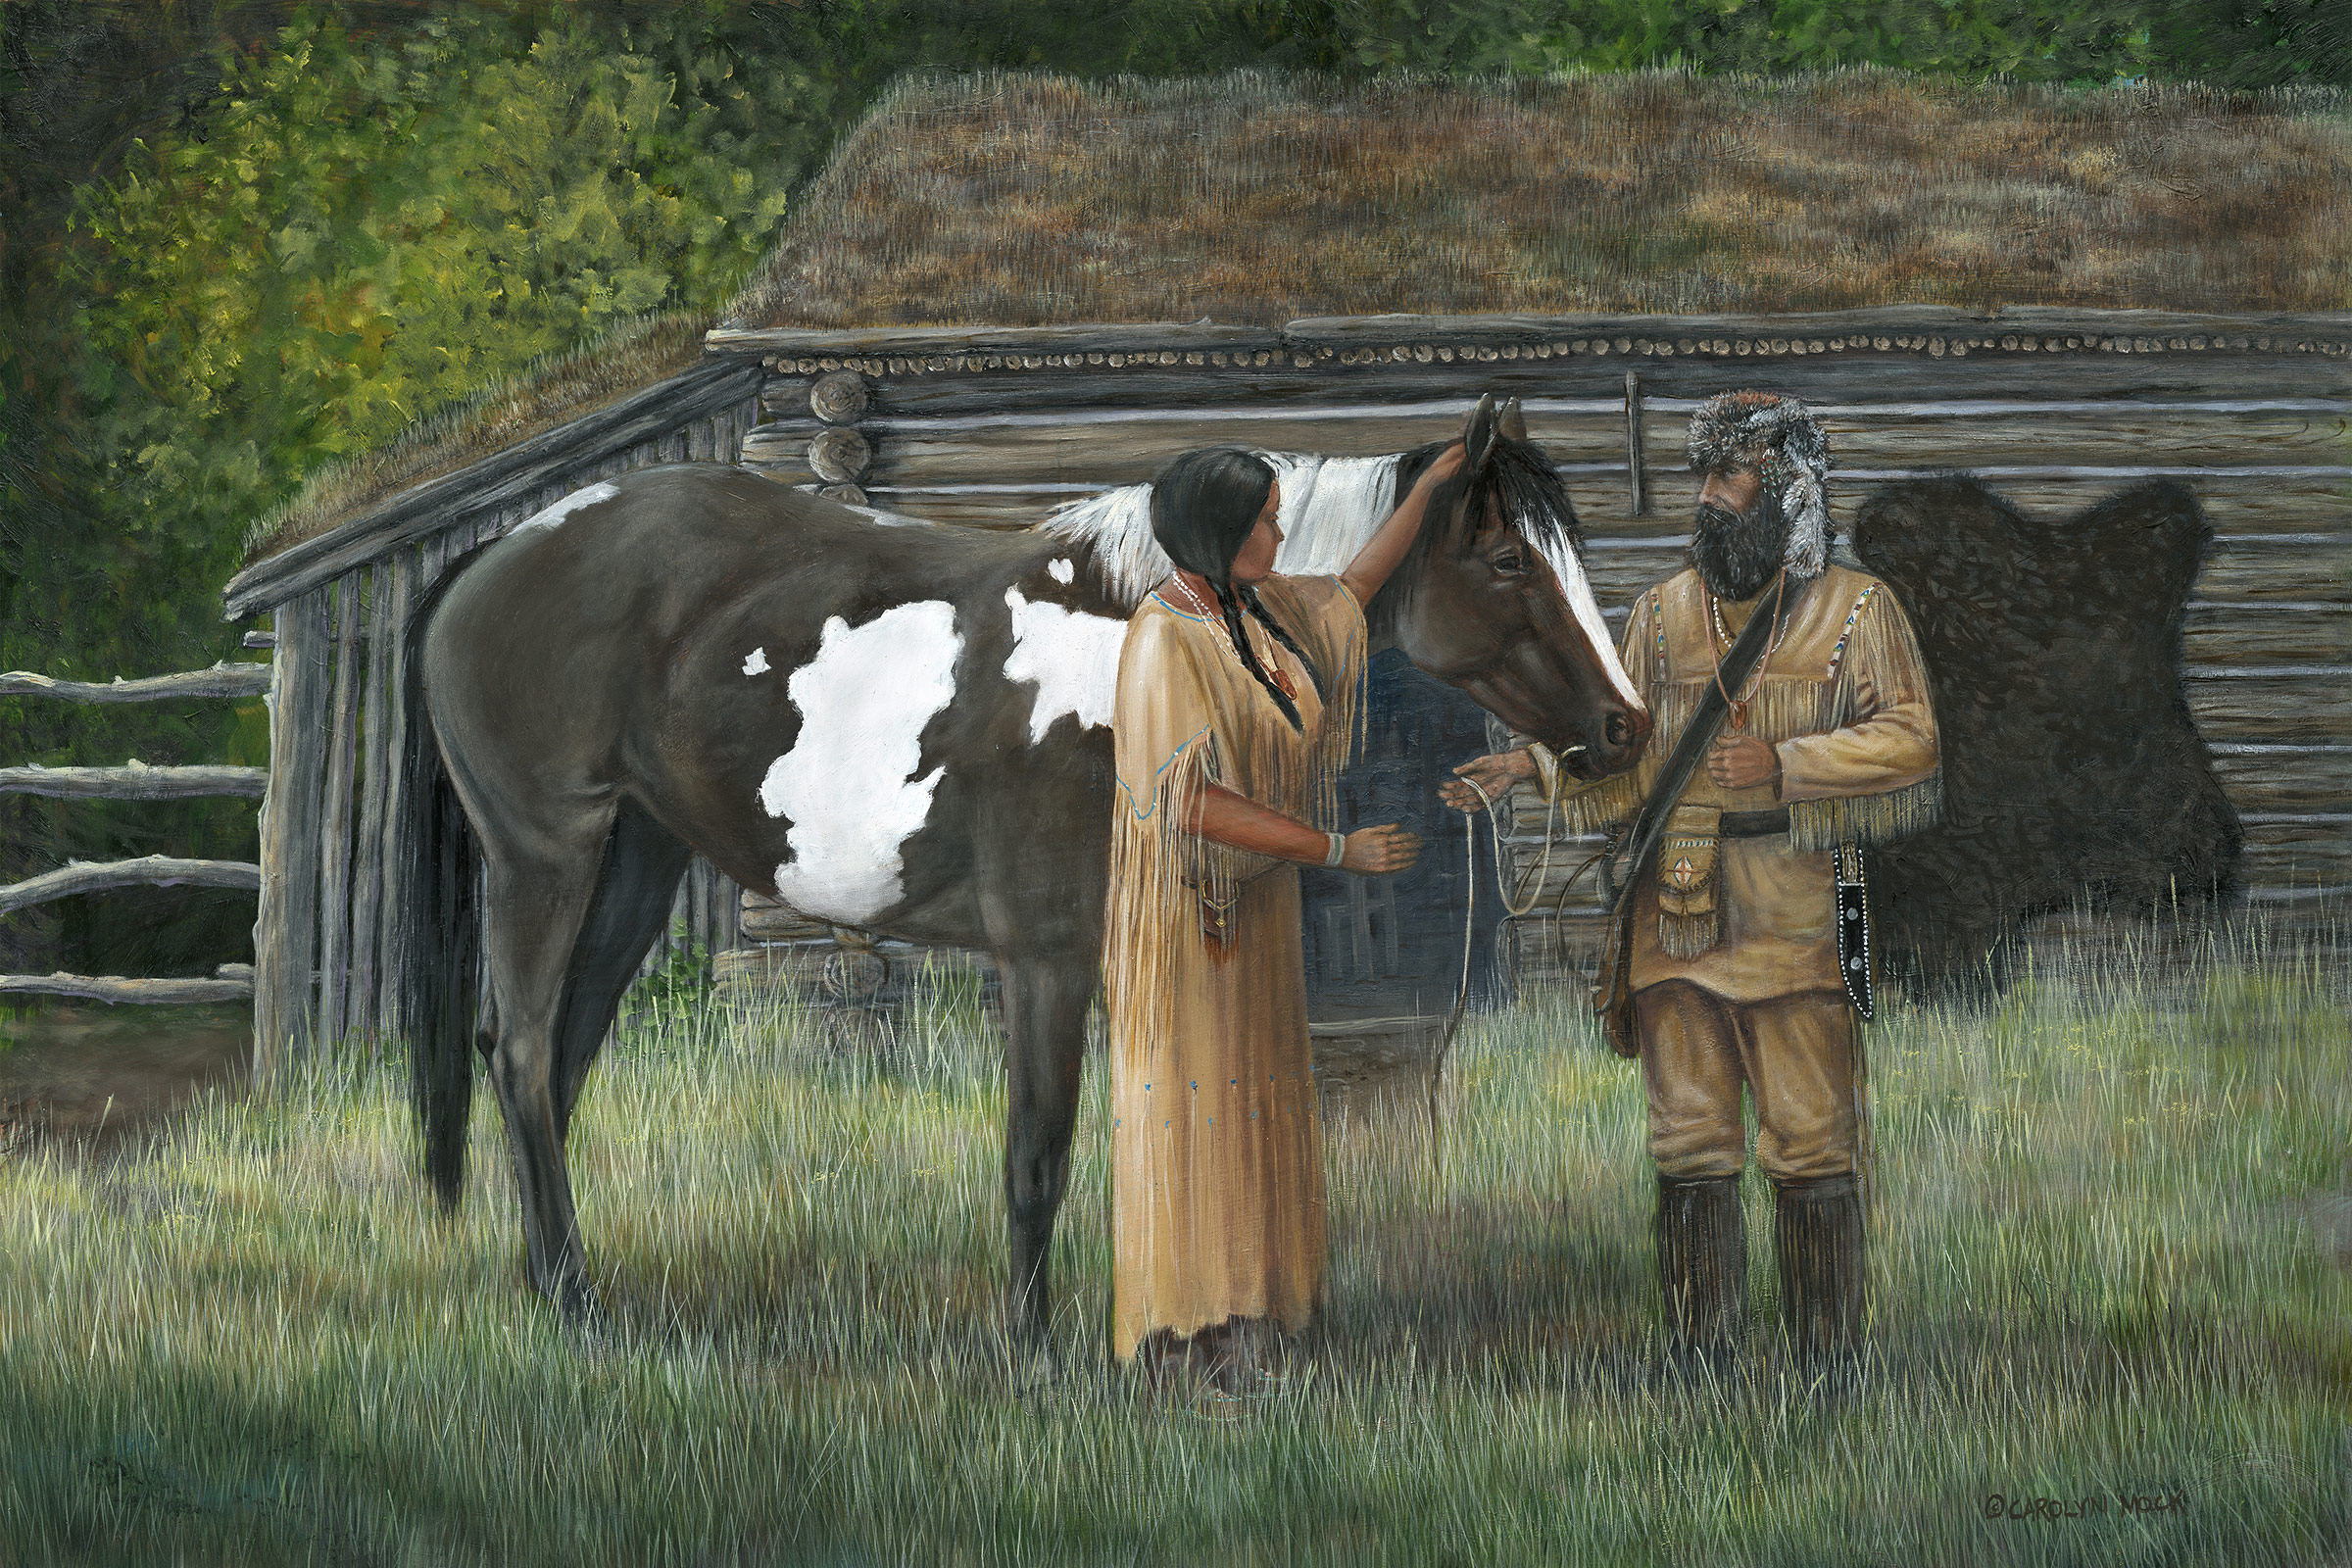 A Native American woman is gifted a horse